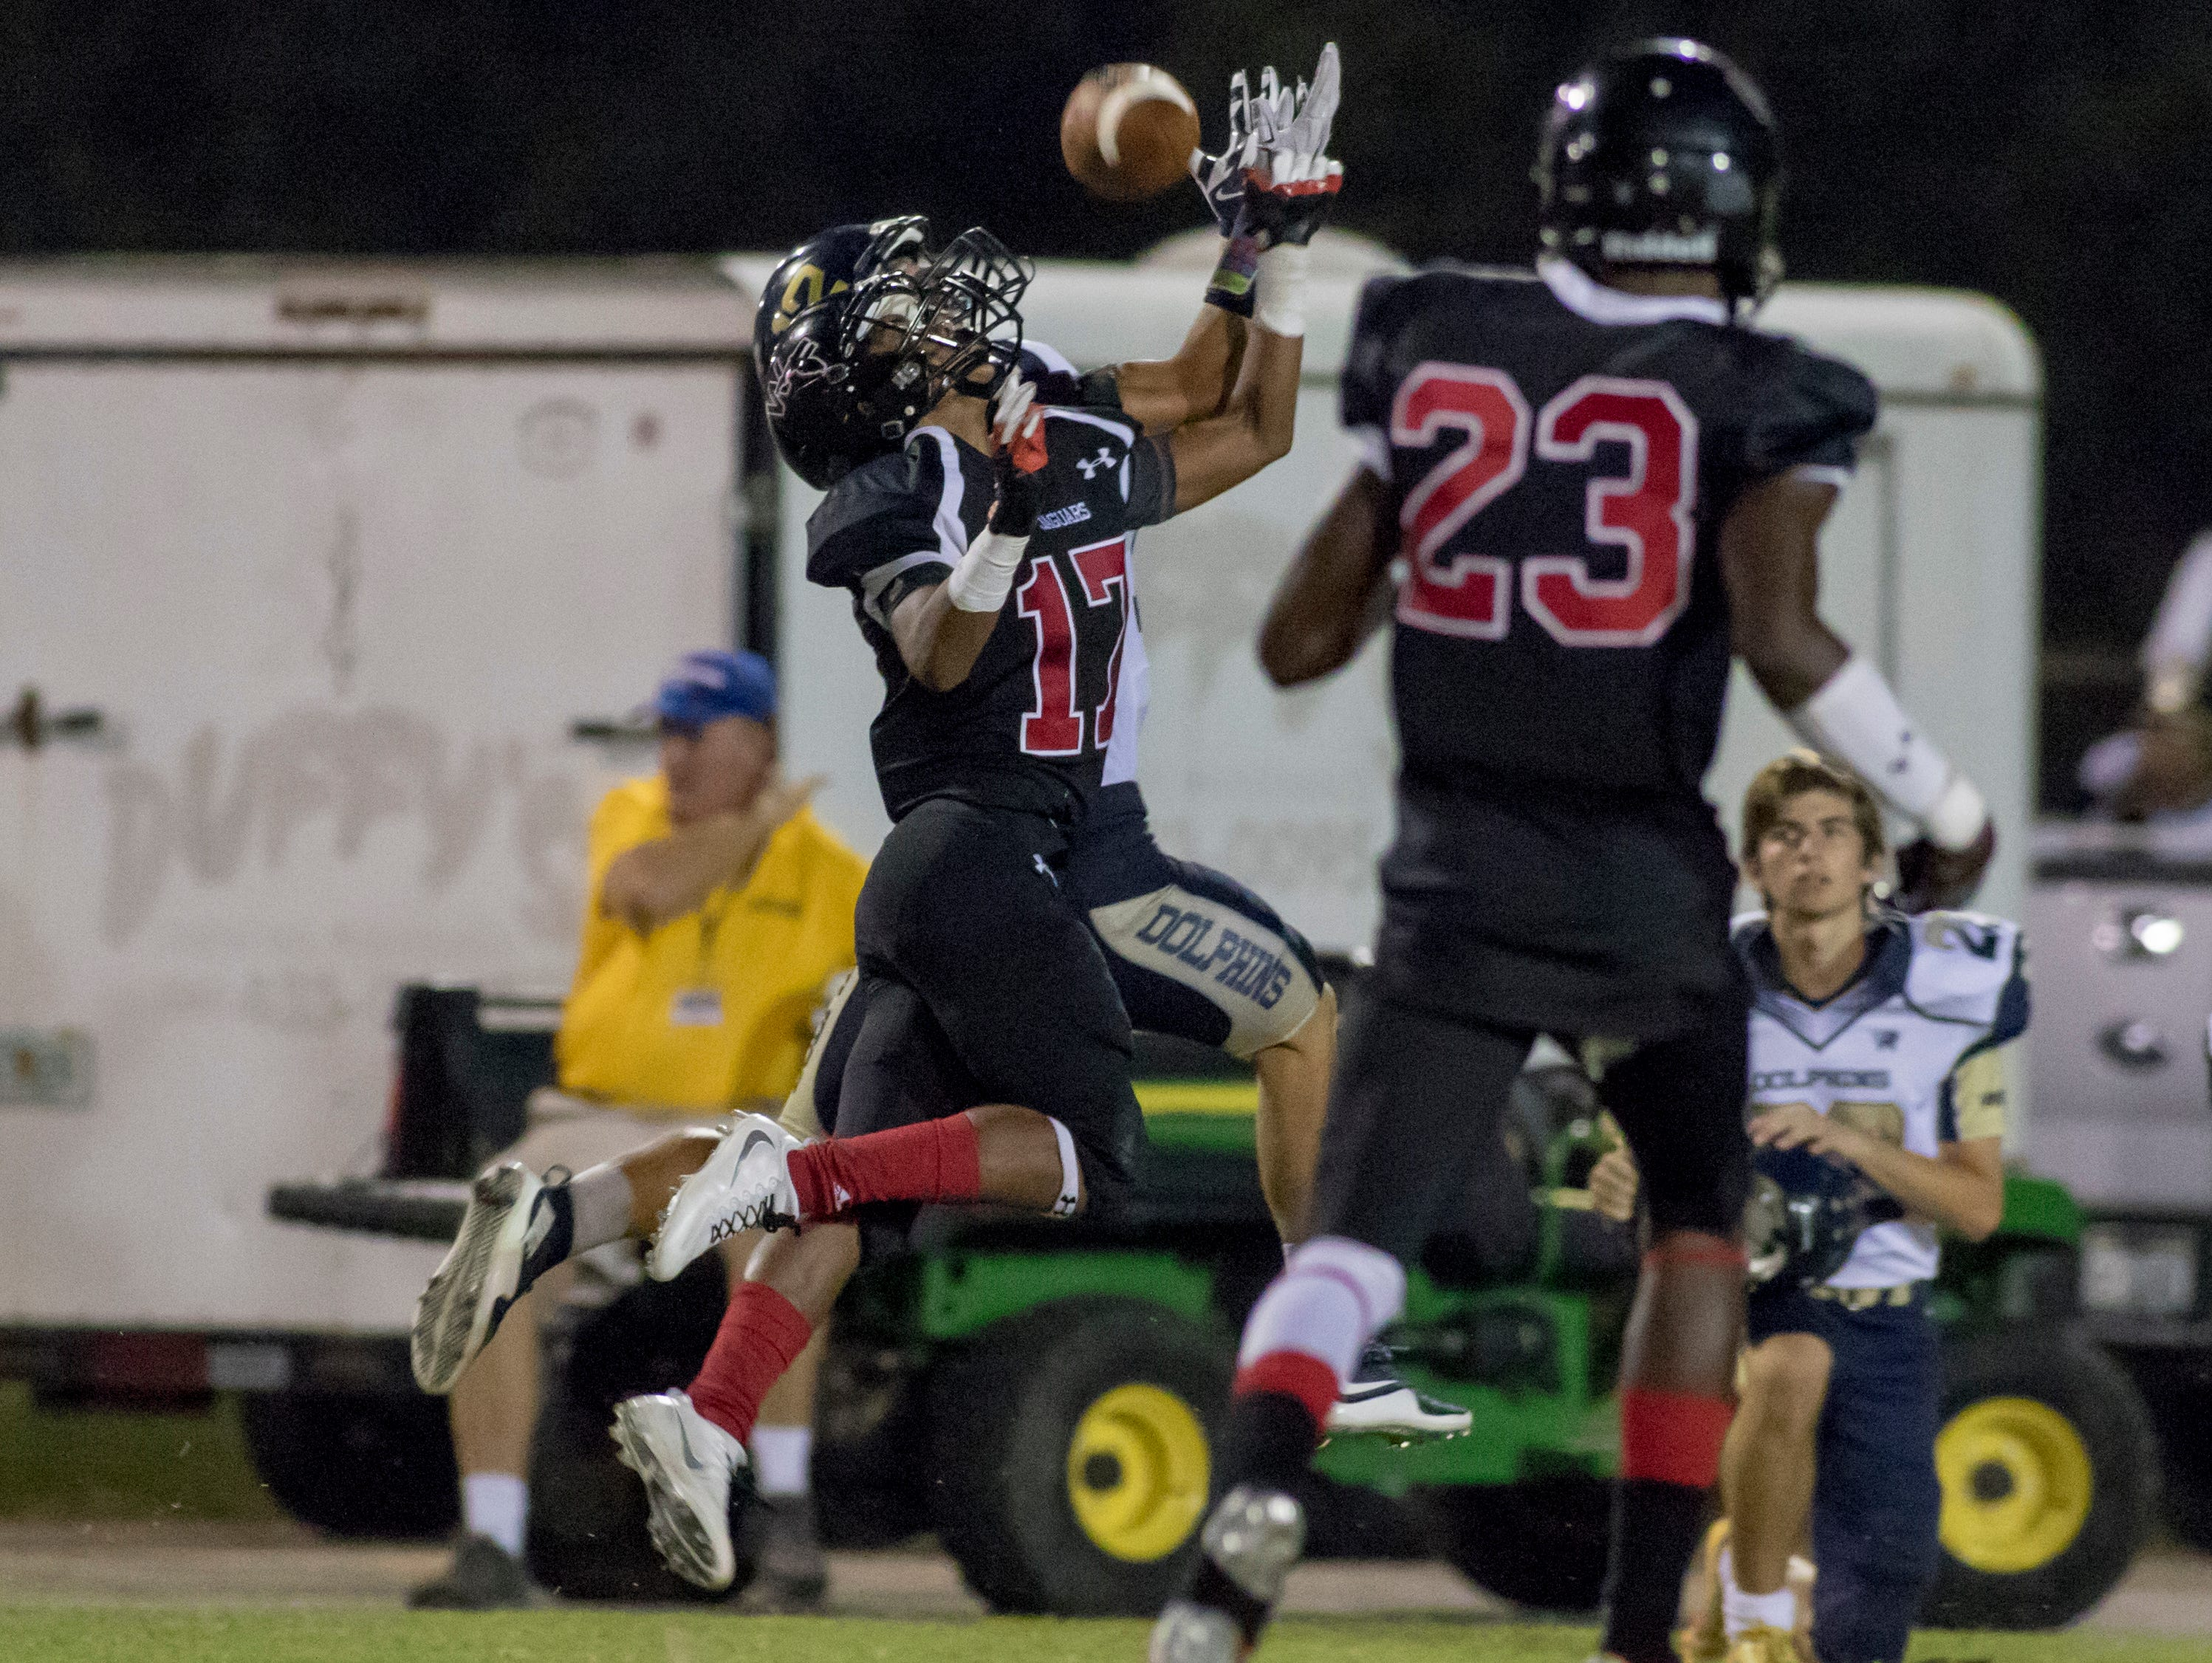 West Florida's Da'Quaris Gaines (23) looks on as his teammate (17) and Gulf Breeze wide receiver Cole Sheppard (12) leap for a pass during a Sept. 23 matchup.